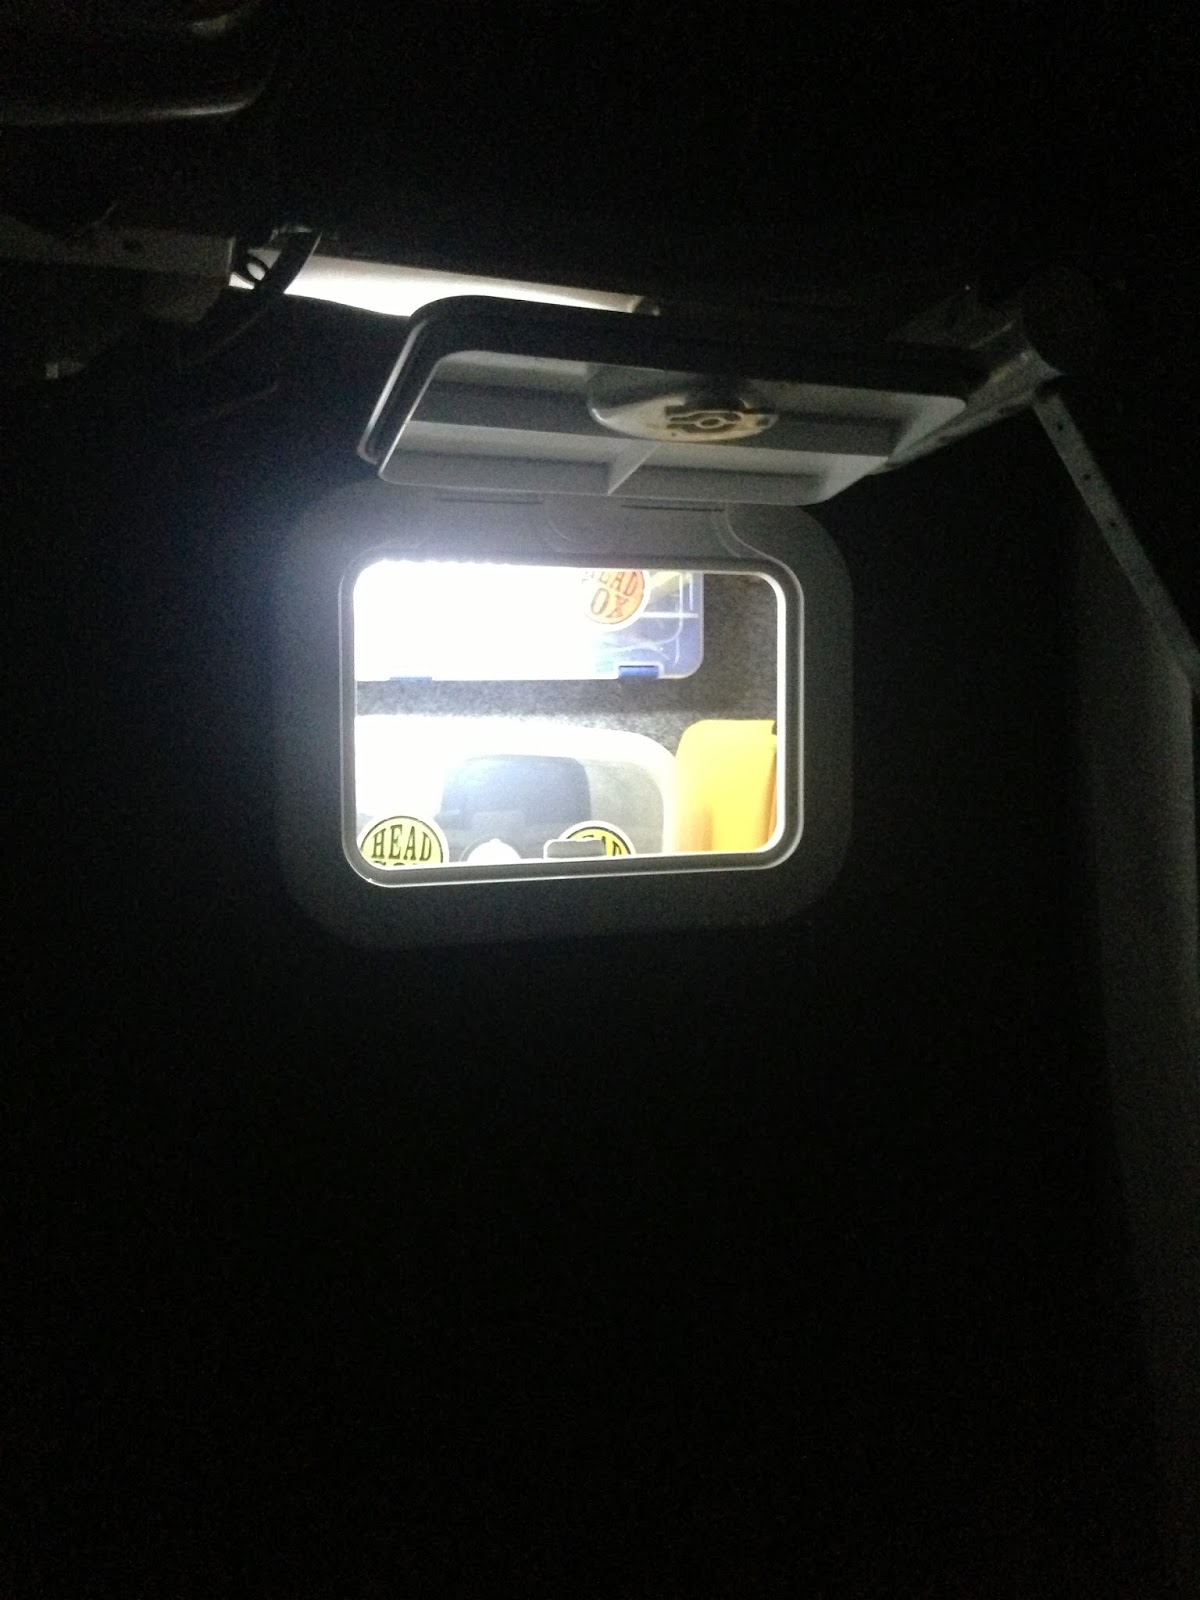 The Fish Cure Bass Boat Build Evinrude Trolling Motor Wiring Diagram Front Cast Deck Light Was Hidden Under Console And Puts Out Just Enough Lights To Illuminate With Any Escaping From